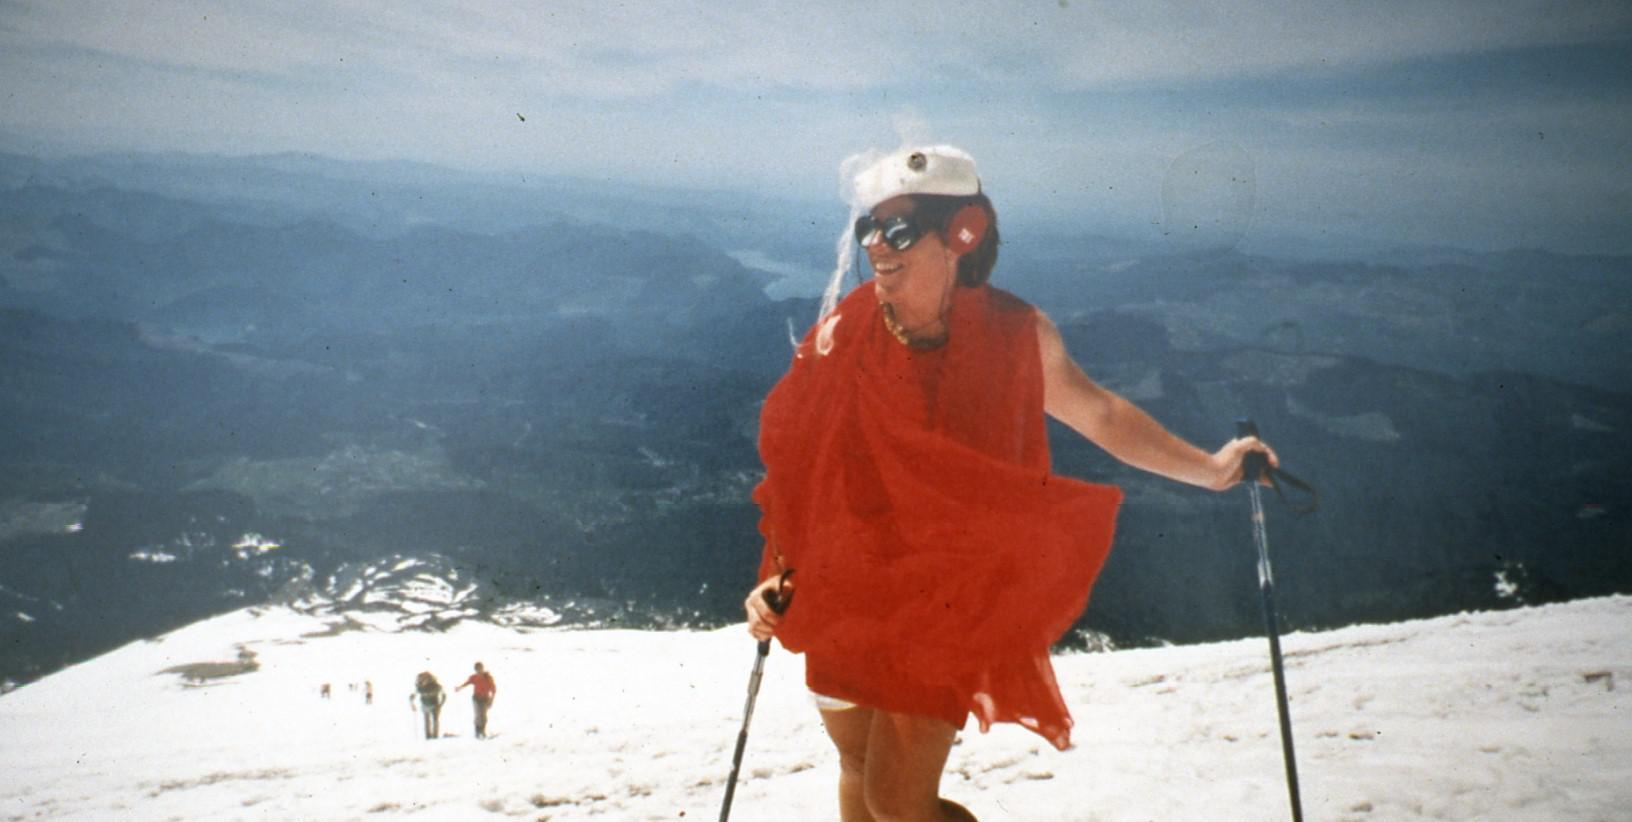 Kathy Phibbs stands on the summit of Mount St Helens in a red chiffon dress and pillbox hat after the mountain reopened to climbers in 1987.